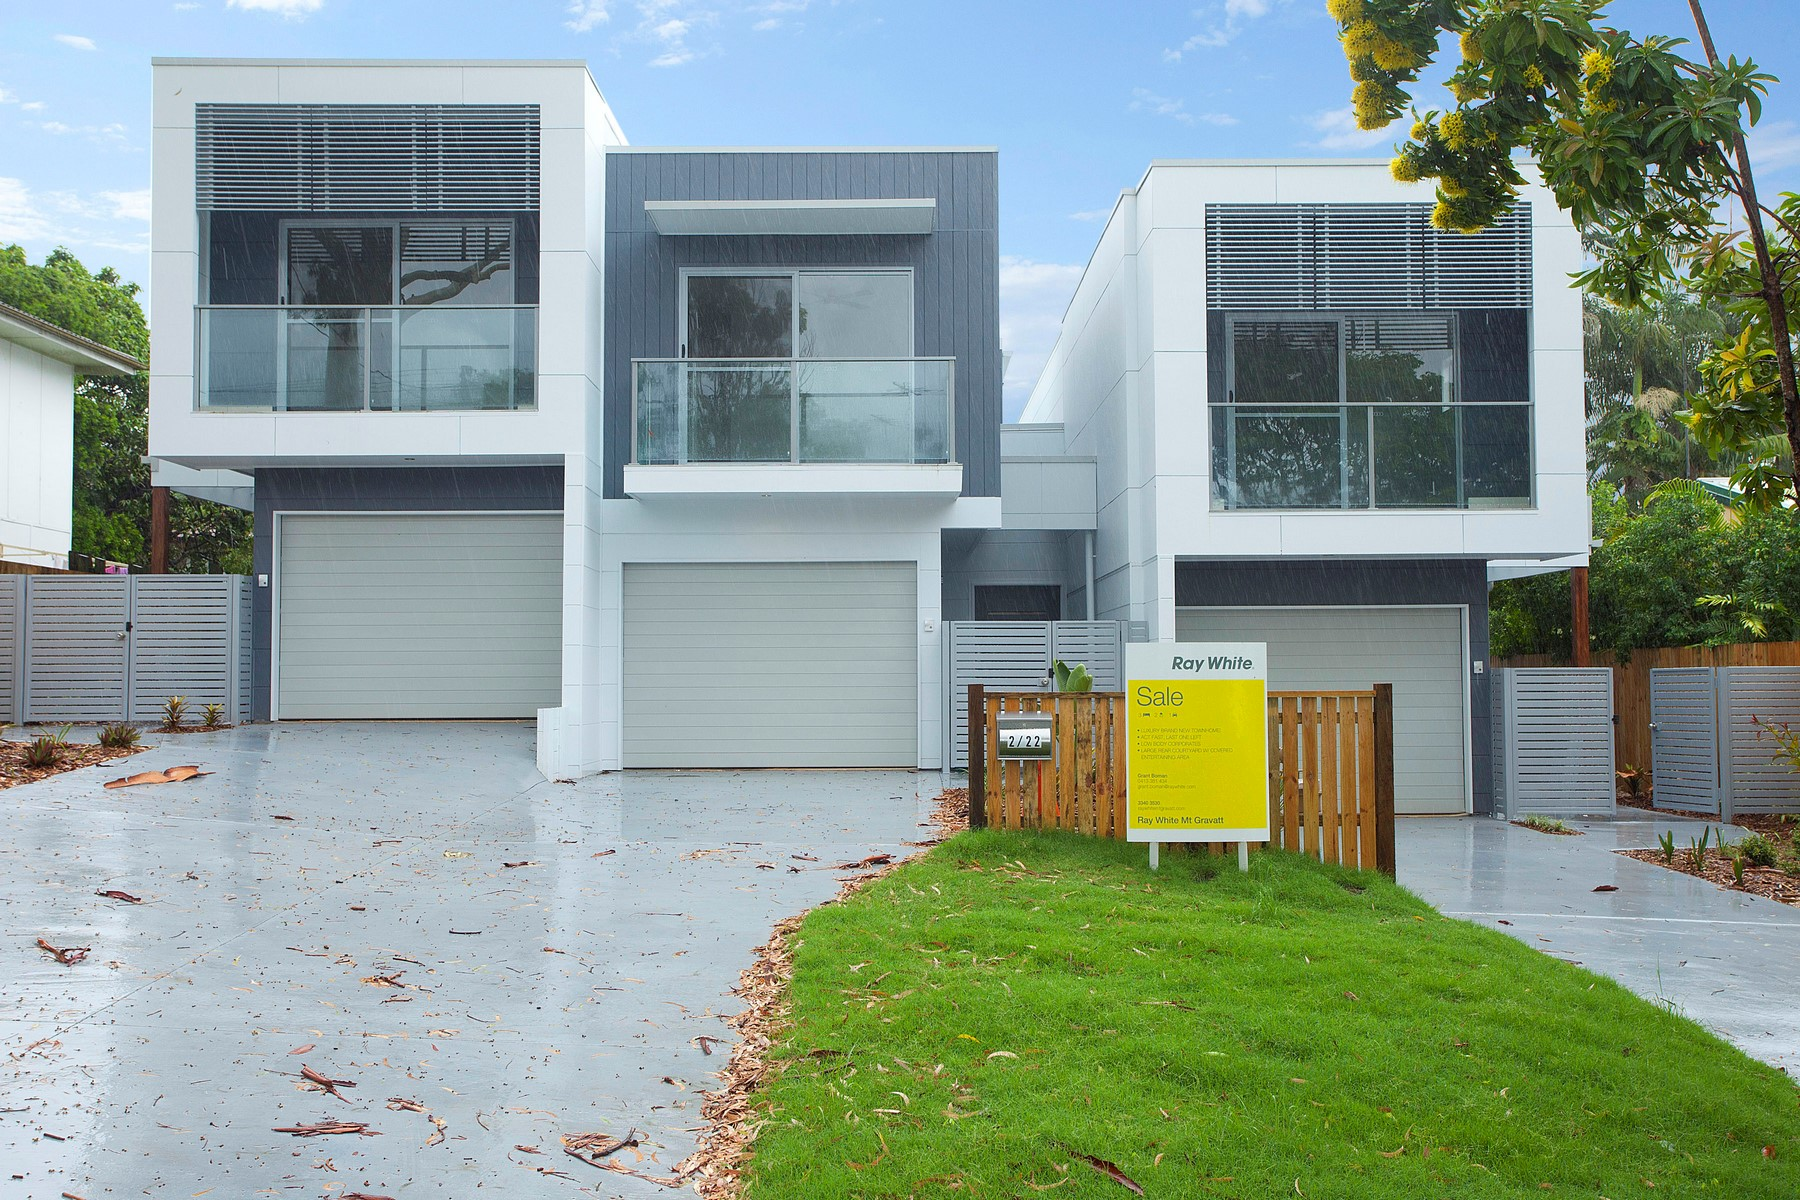 Brisbane building designer brisbane architect brisbane for 4 unit townhouse plans